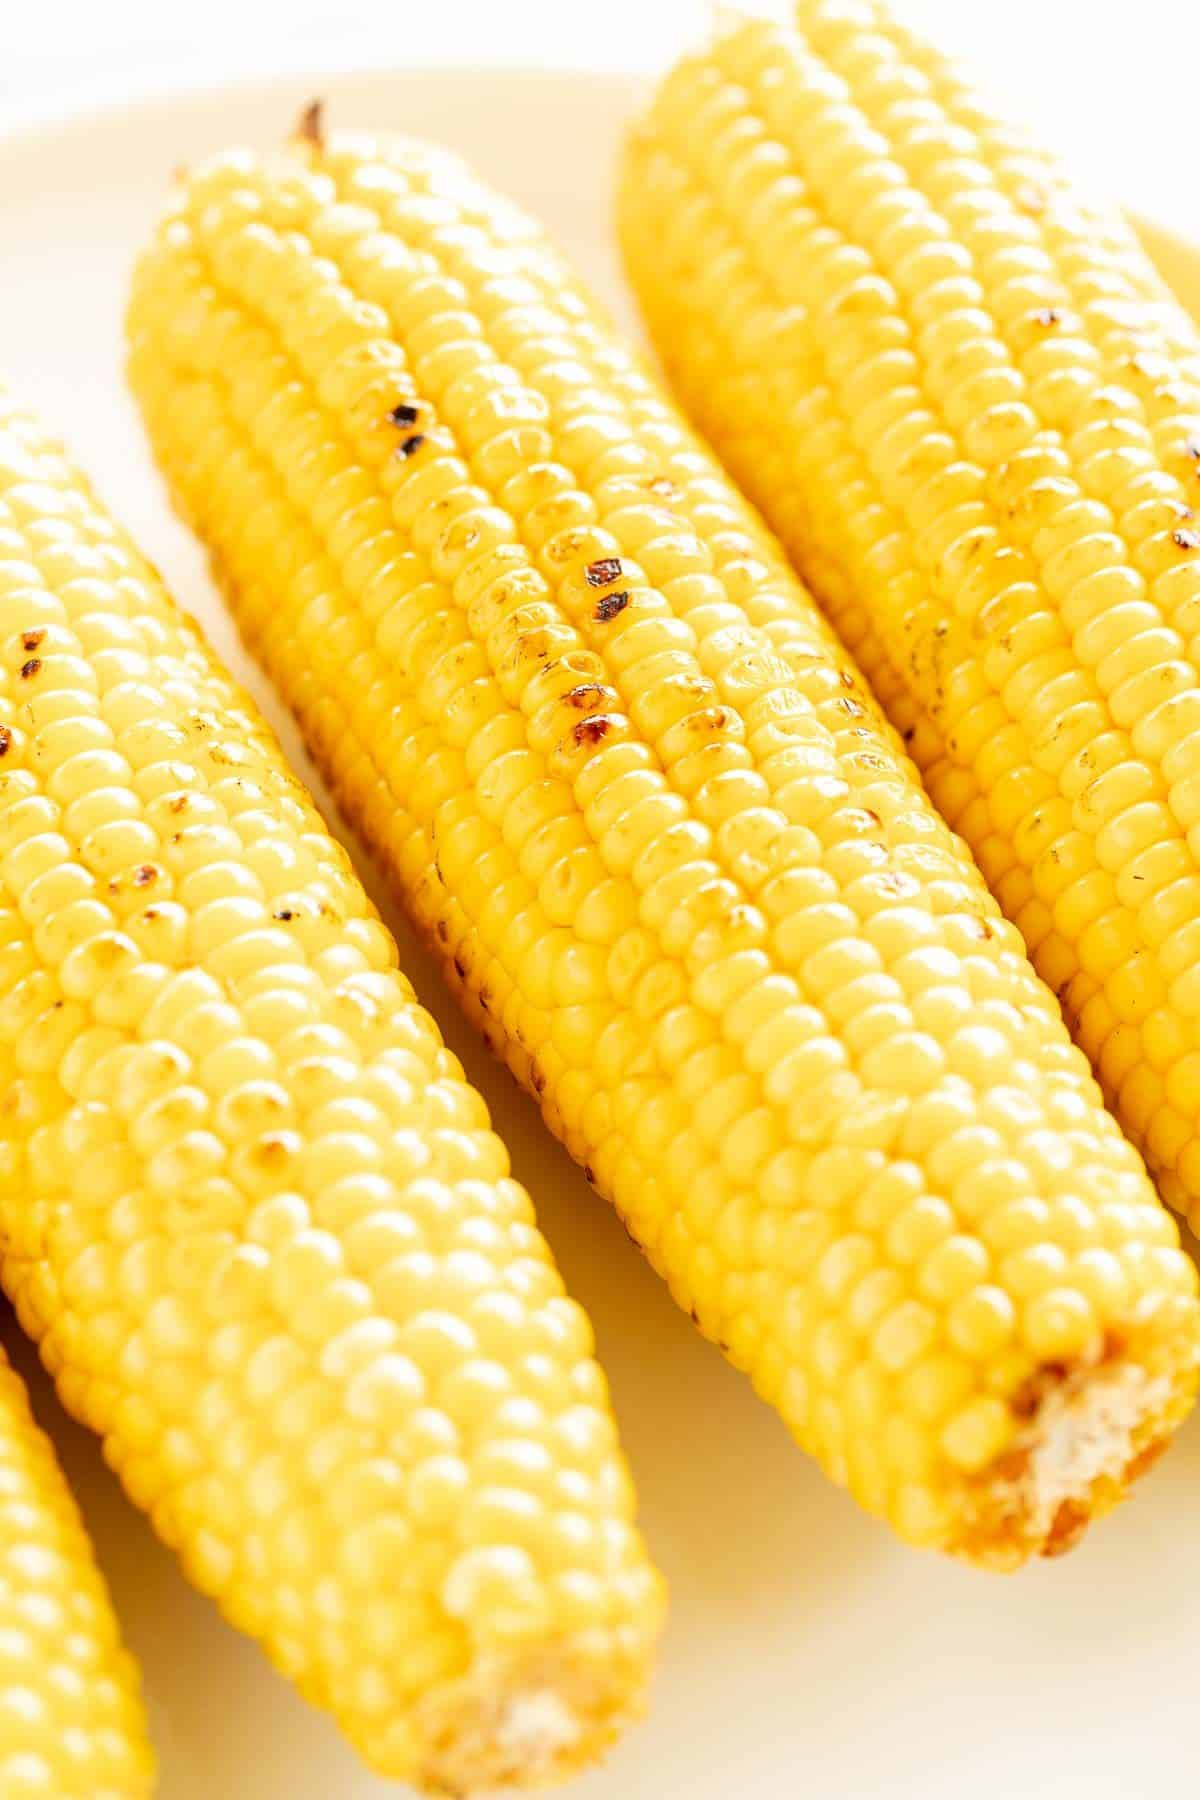 Ears of grilled corn on the cob on a white plate.